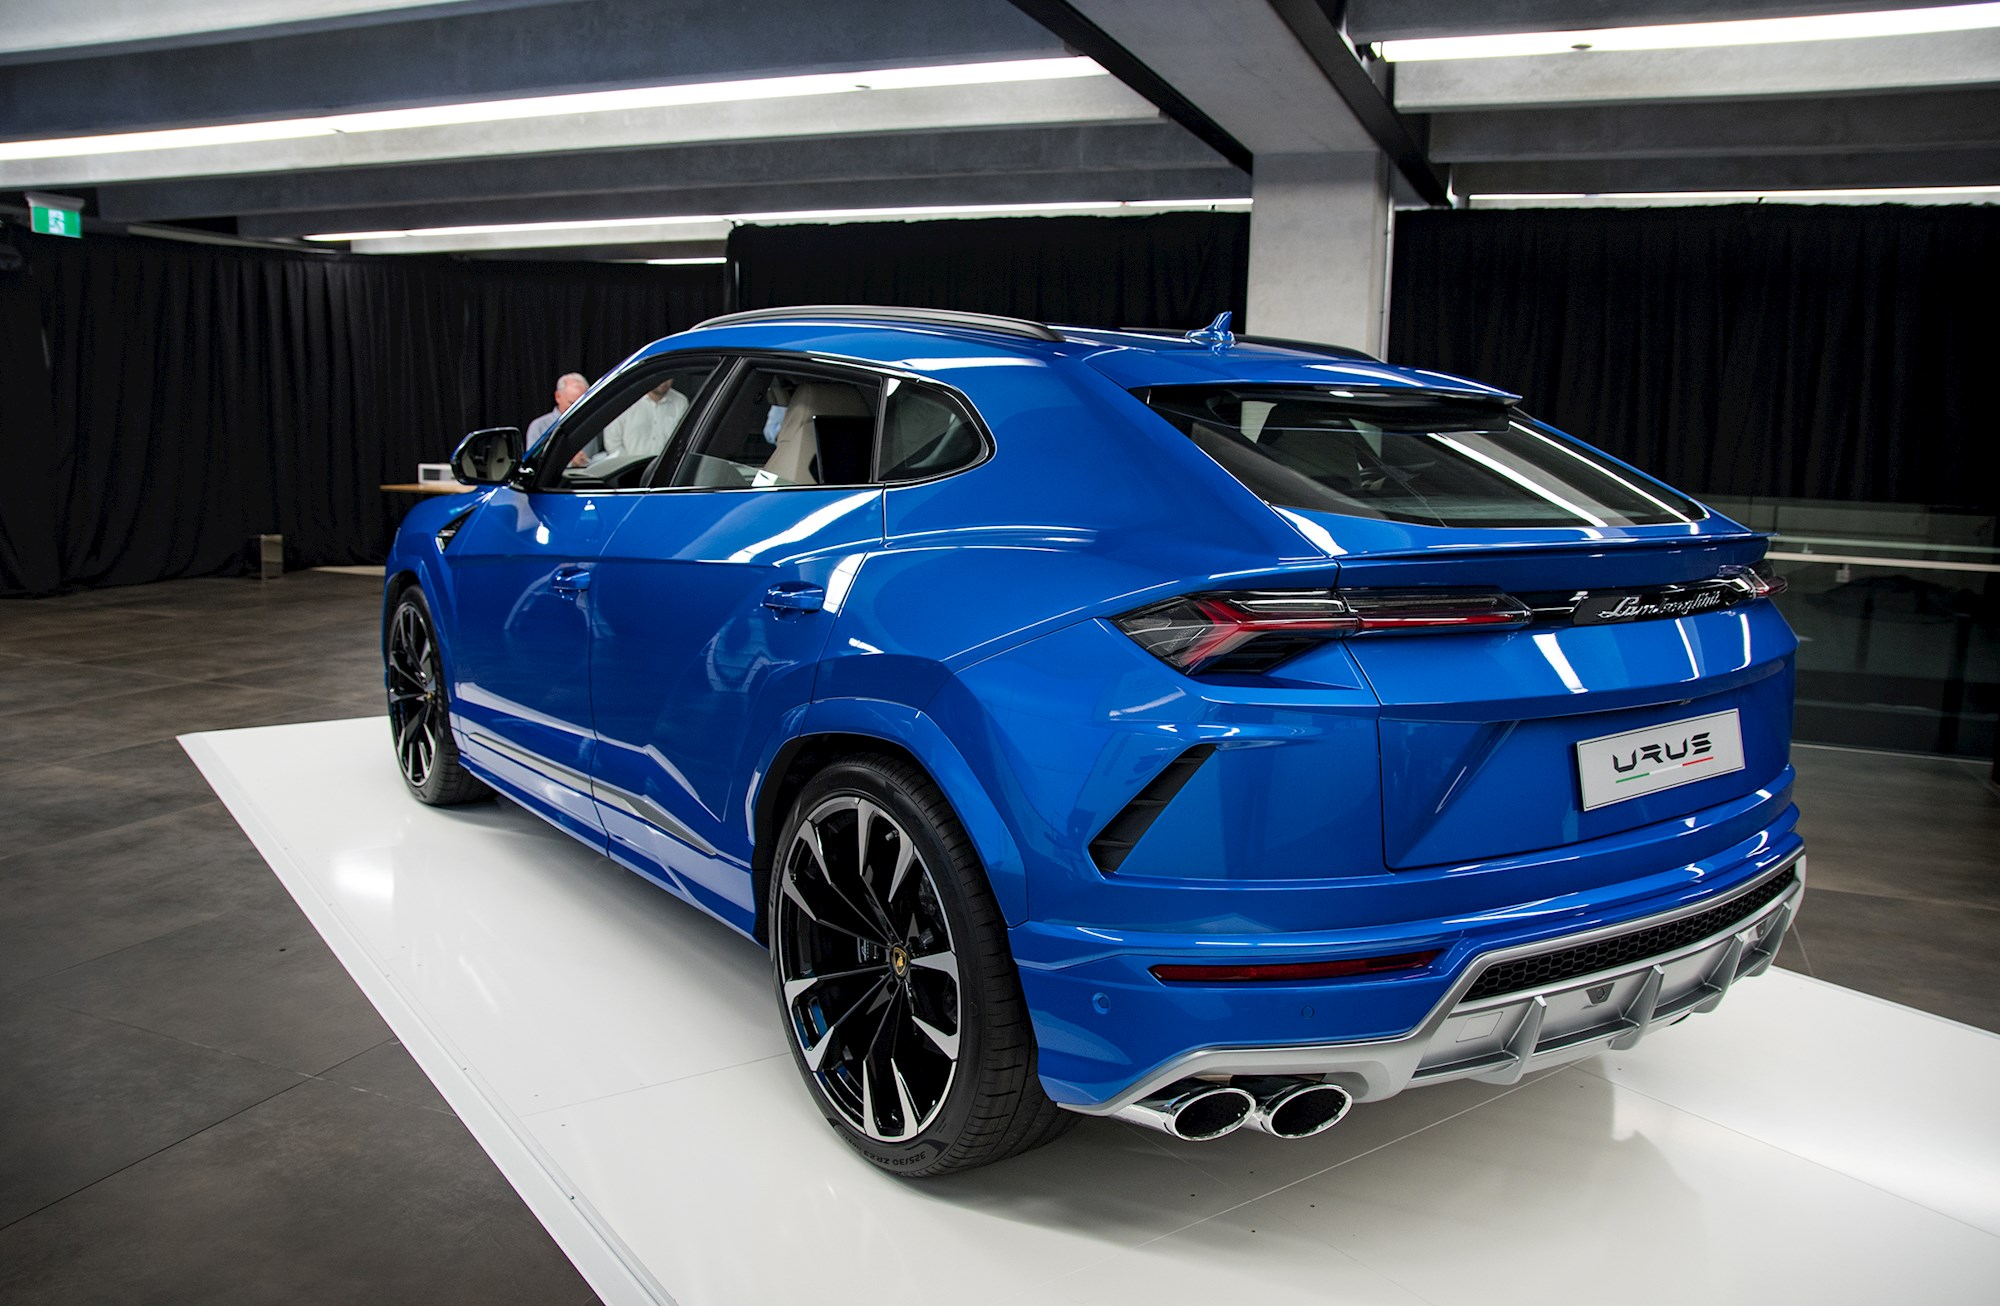 Greatest SUV ever? We examine NZ's first Lamborghini Urus